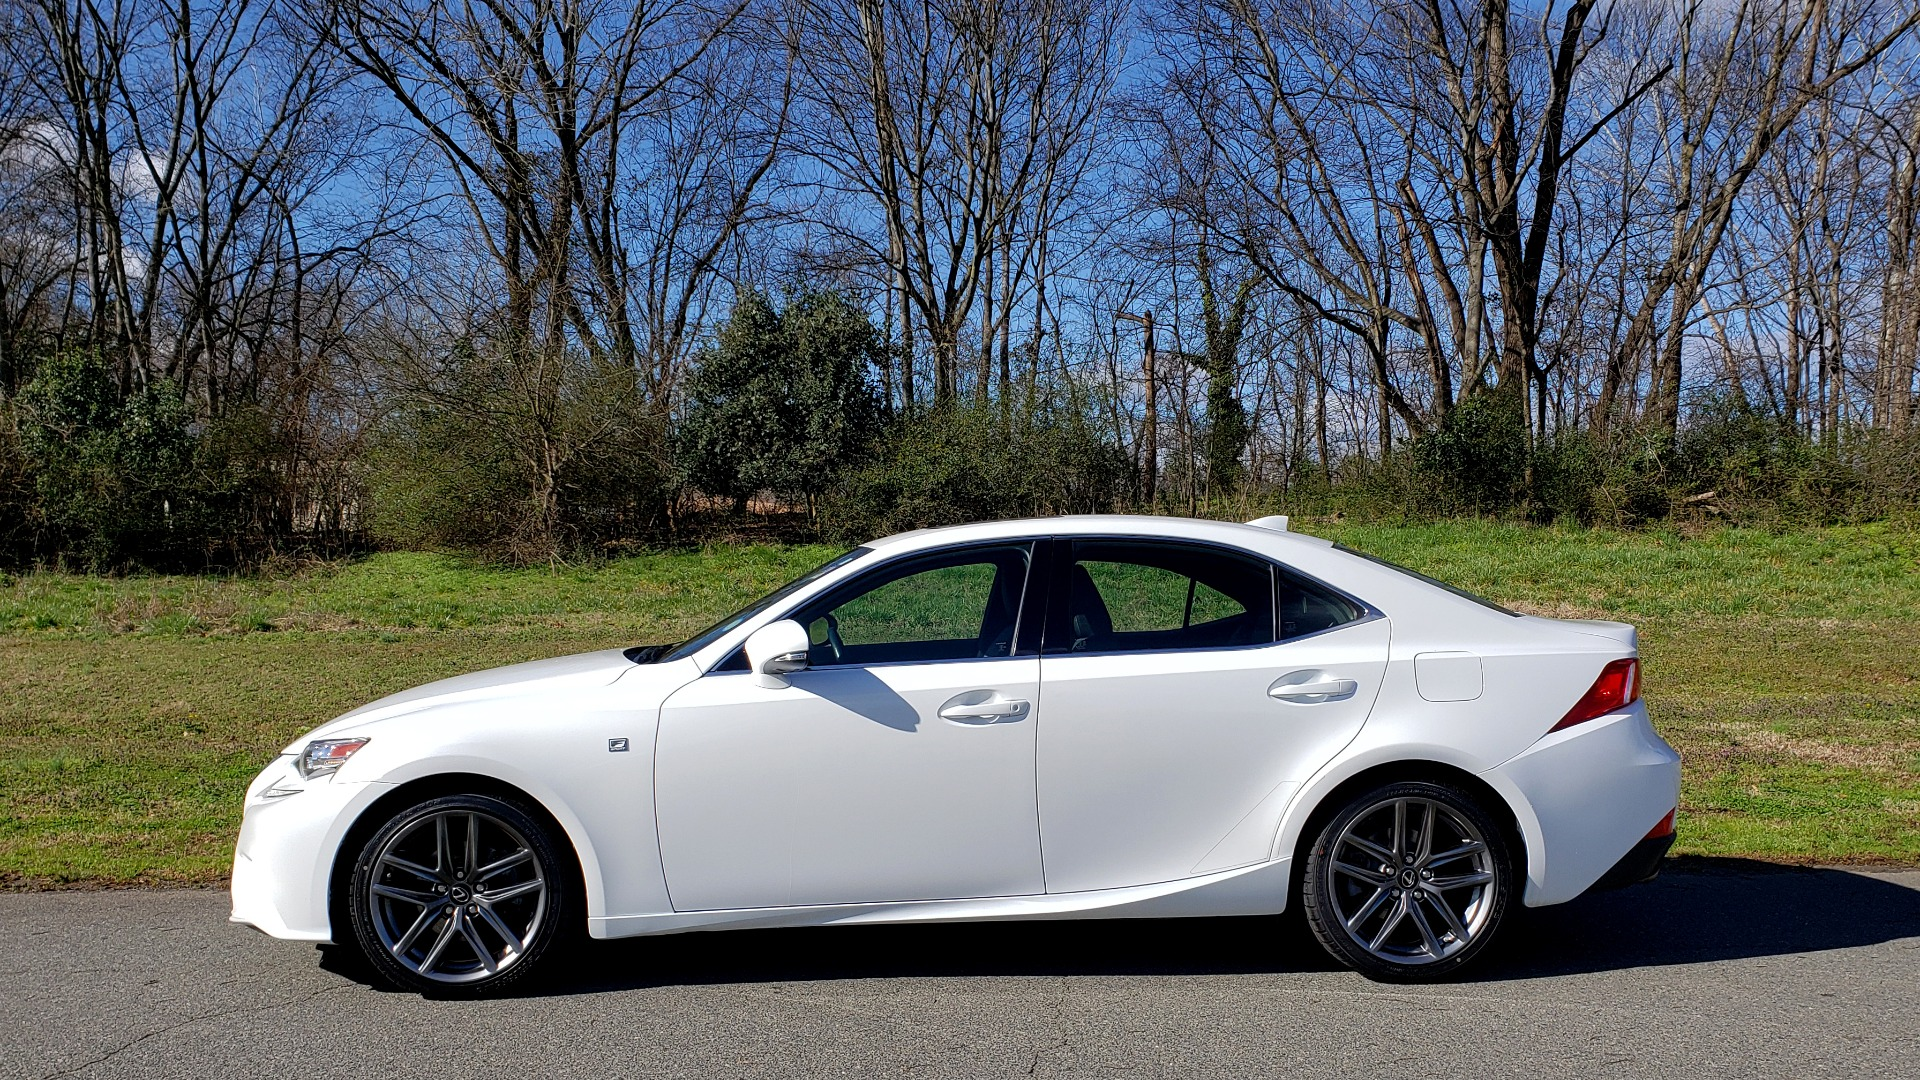 Used 2014 Lexus IS 250 F-SPORT / NAV / SUNROOF / REARVIEW / BSM for sale Sold at Formula Imports in Charlotte NC 28227 2